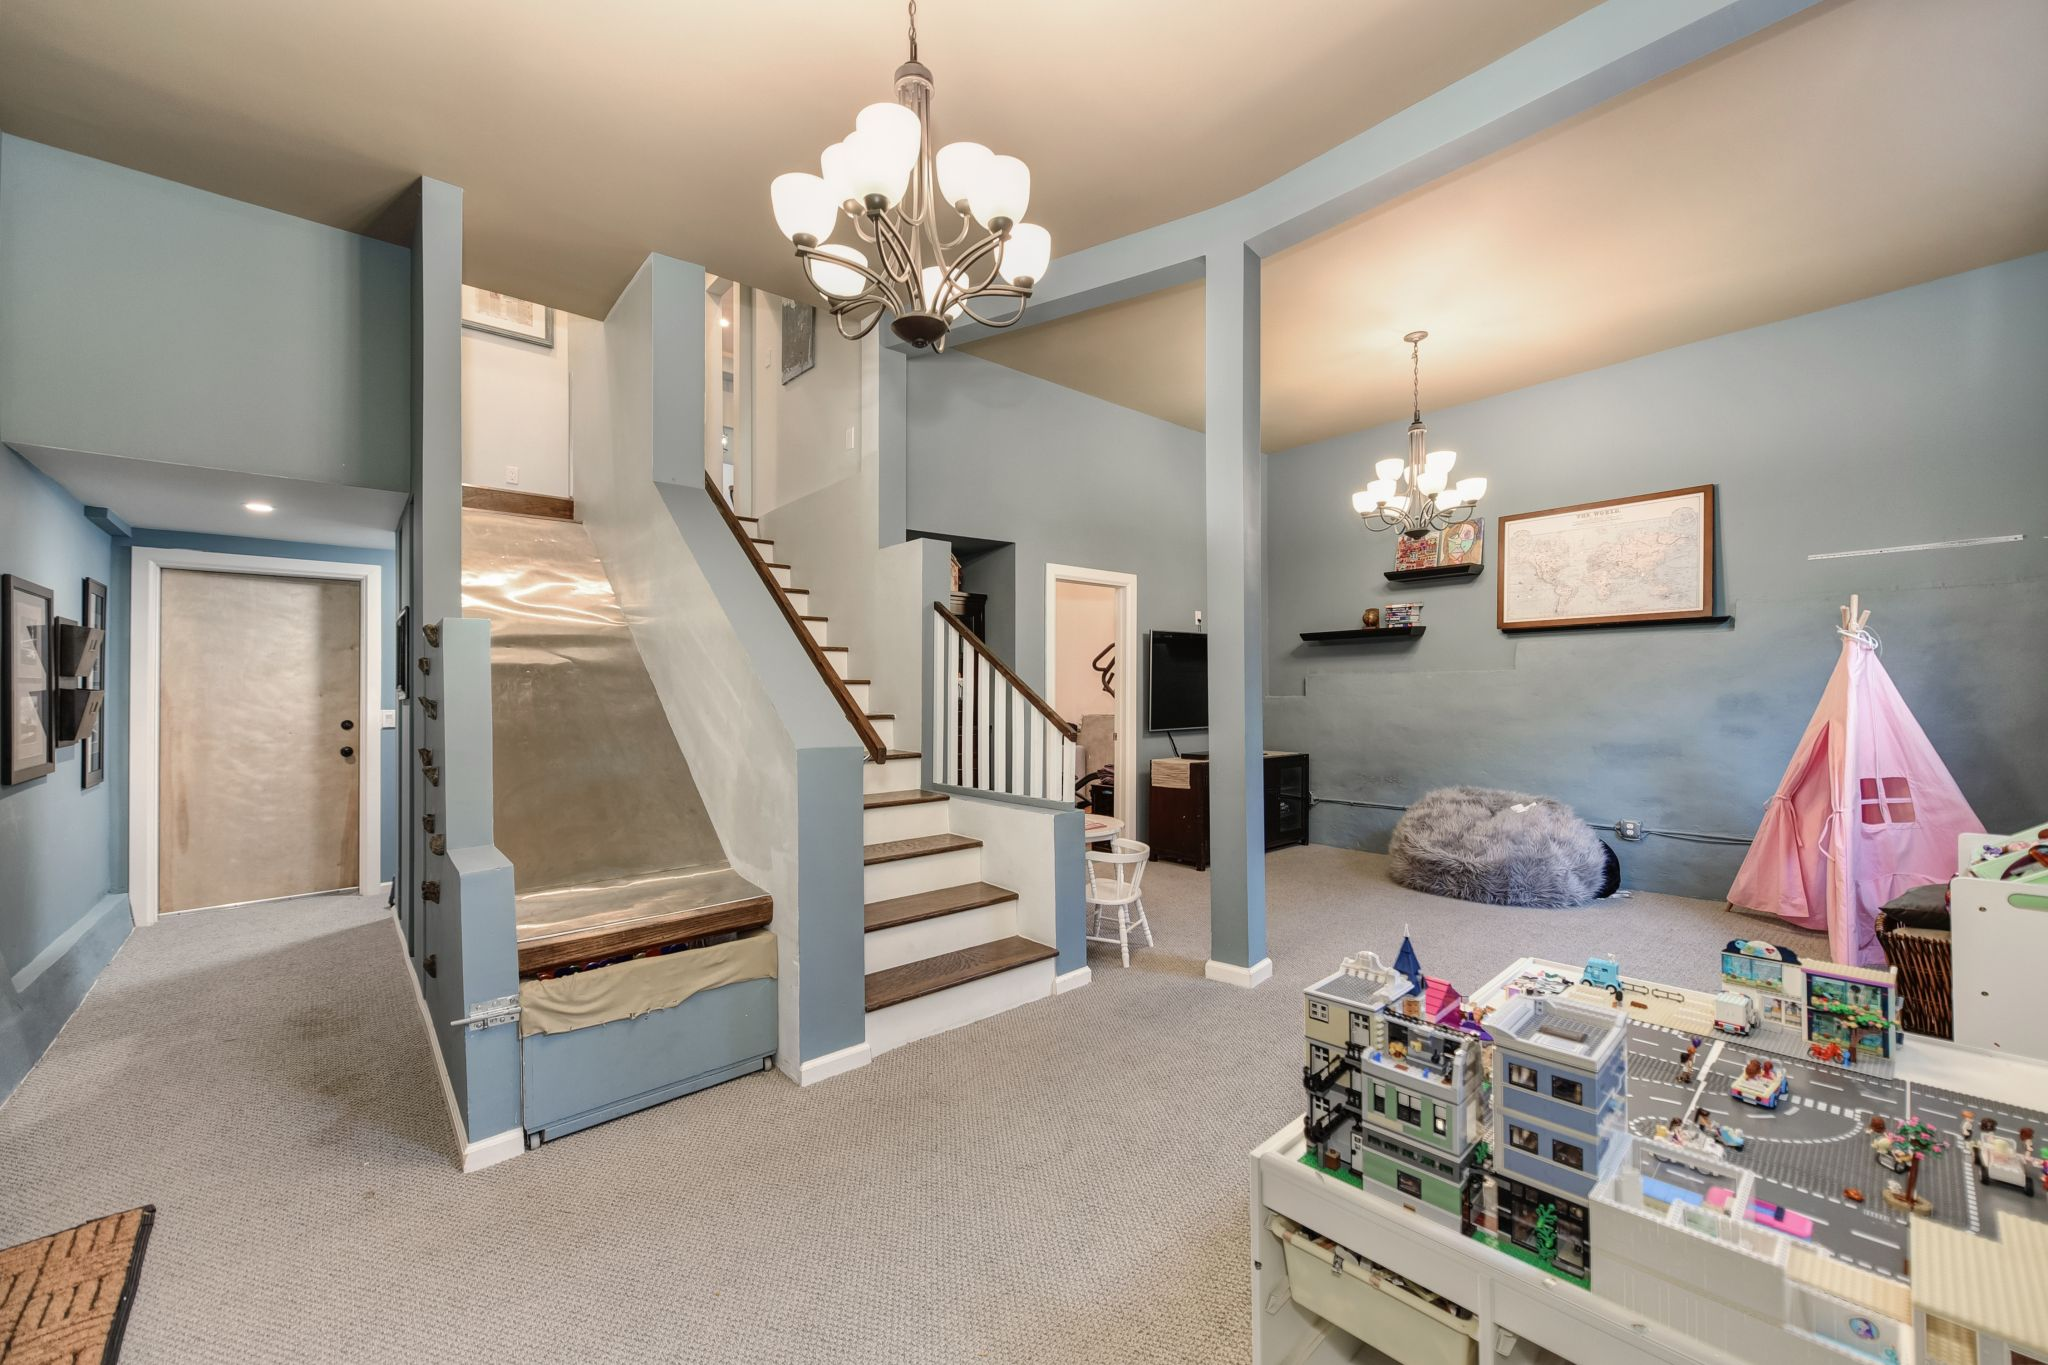 The lower level has 11-foot ceilings and is a perfect space for a play room or media room.